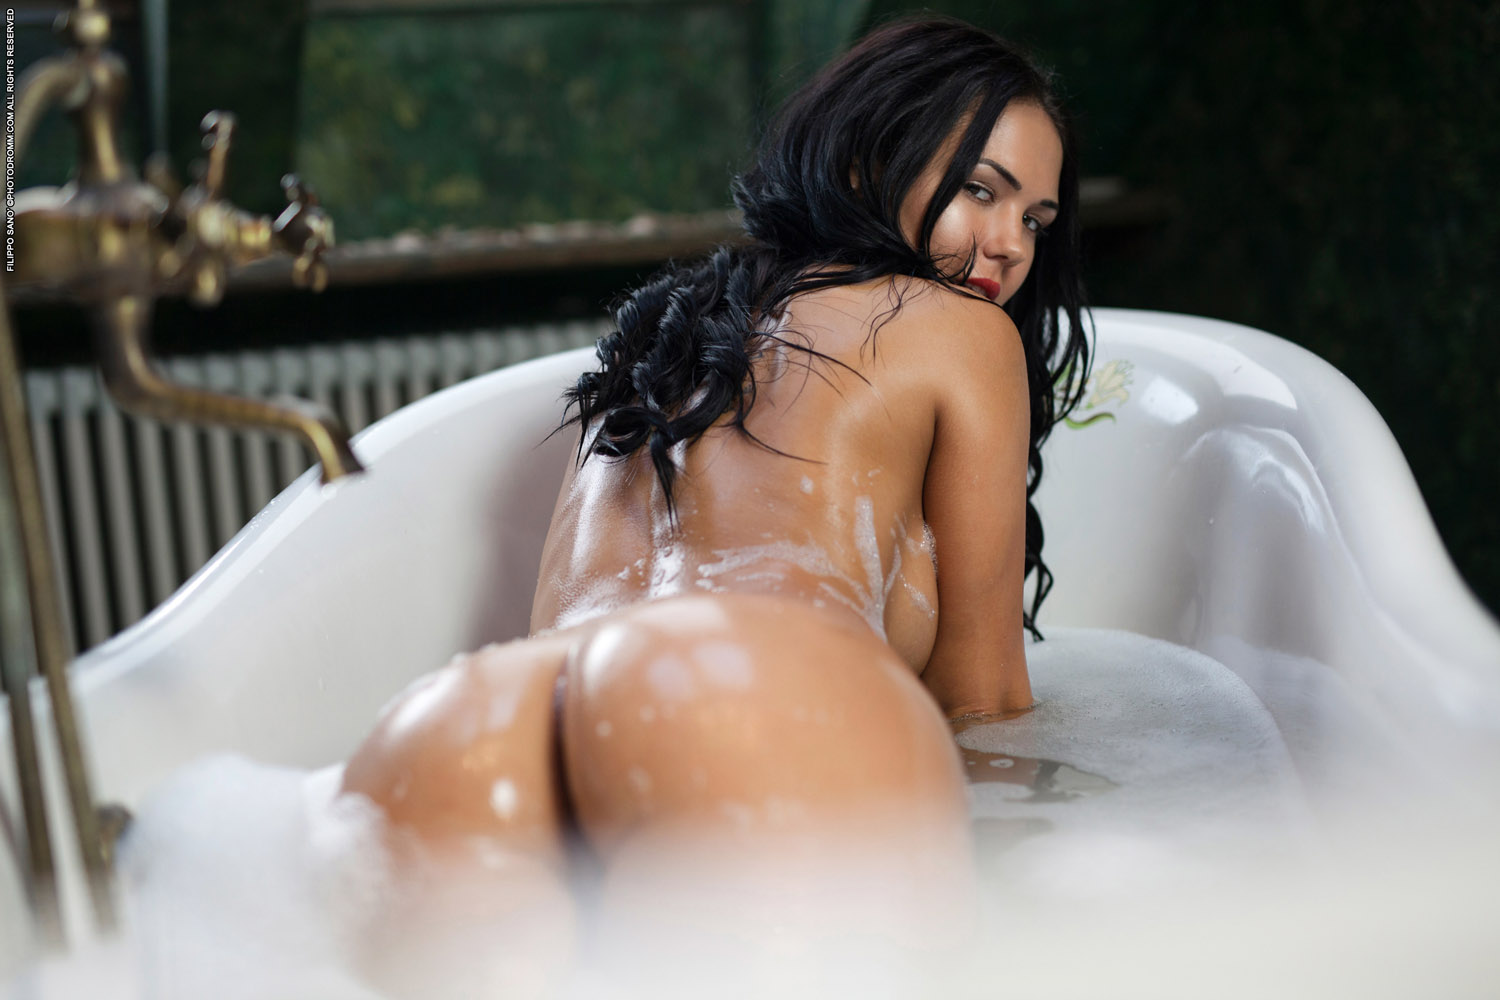 Sexy black girls nude bath in bubbles — img 3